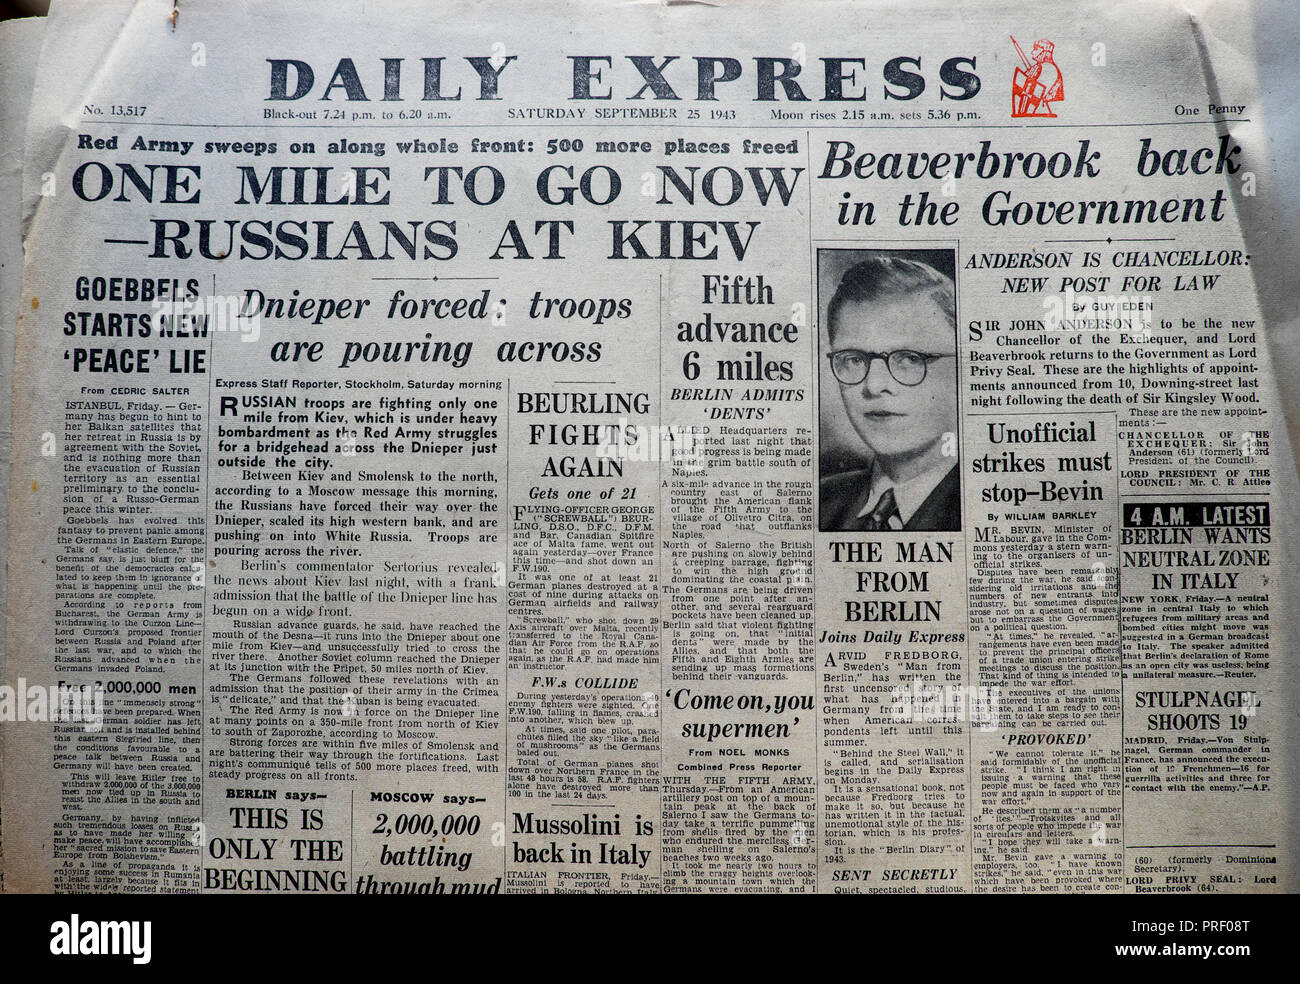 'One Mile to Go Now - Russians at Kiev' front page headlines Second World War WWII of the Daily Express newspaper London England UK September 25 1943 - Stock Image